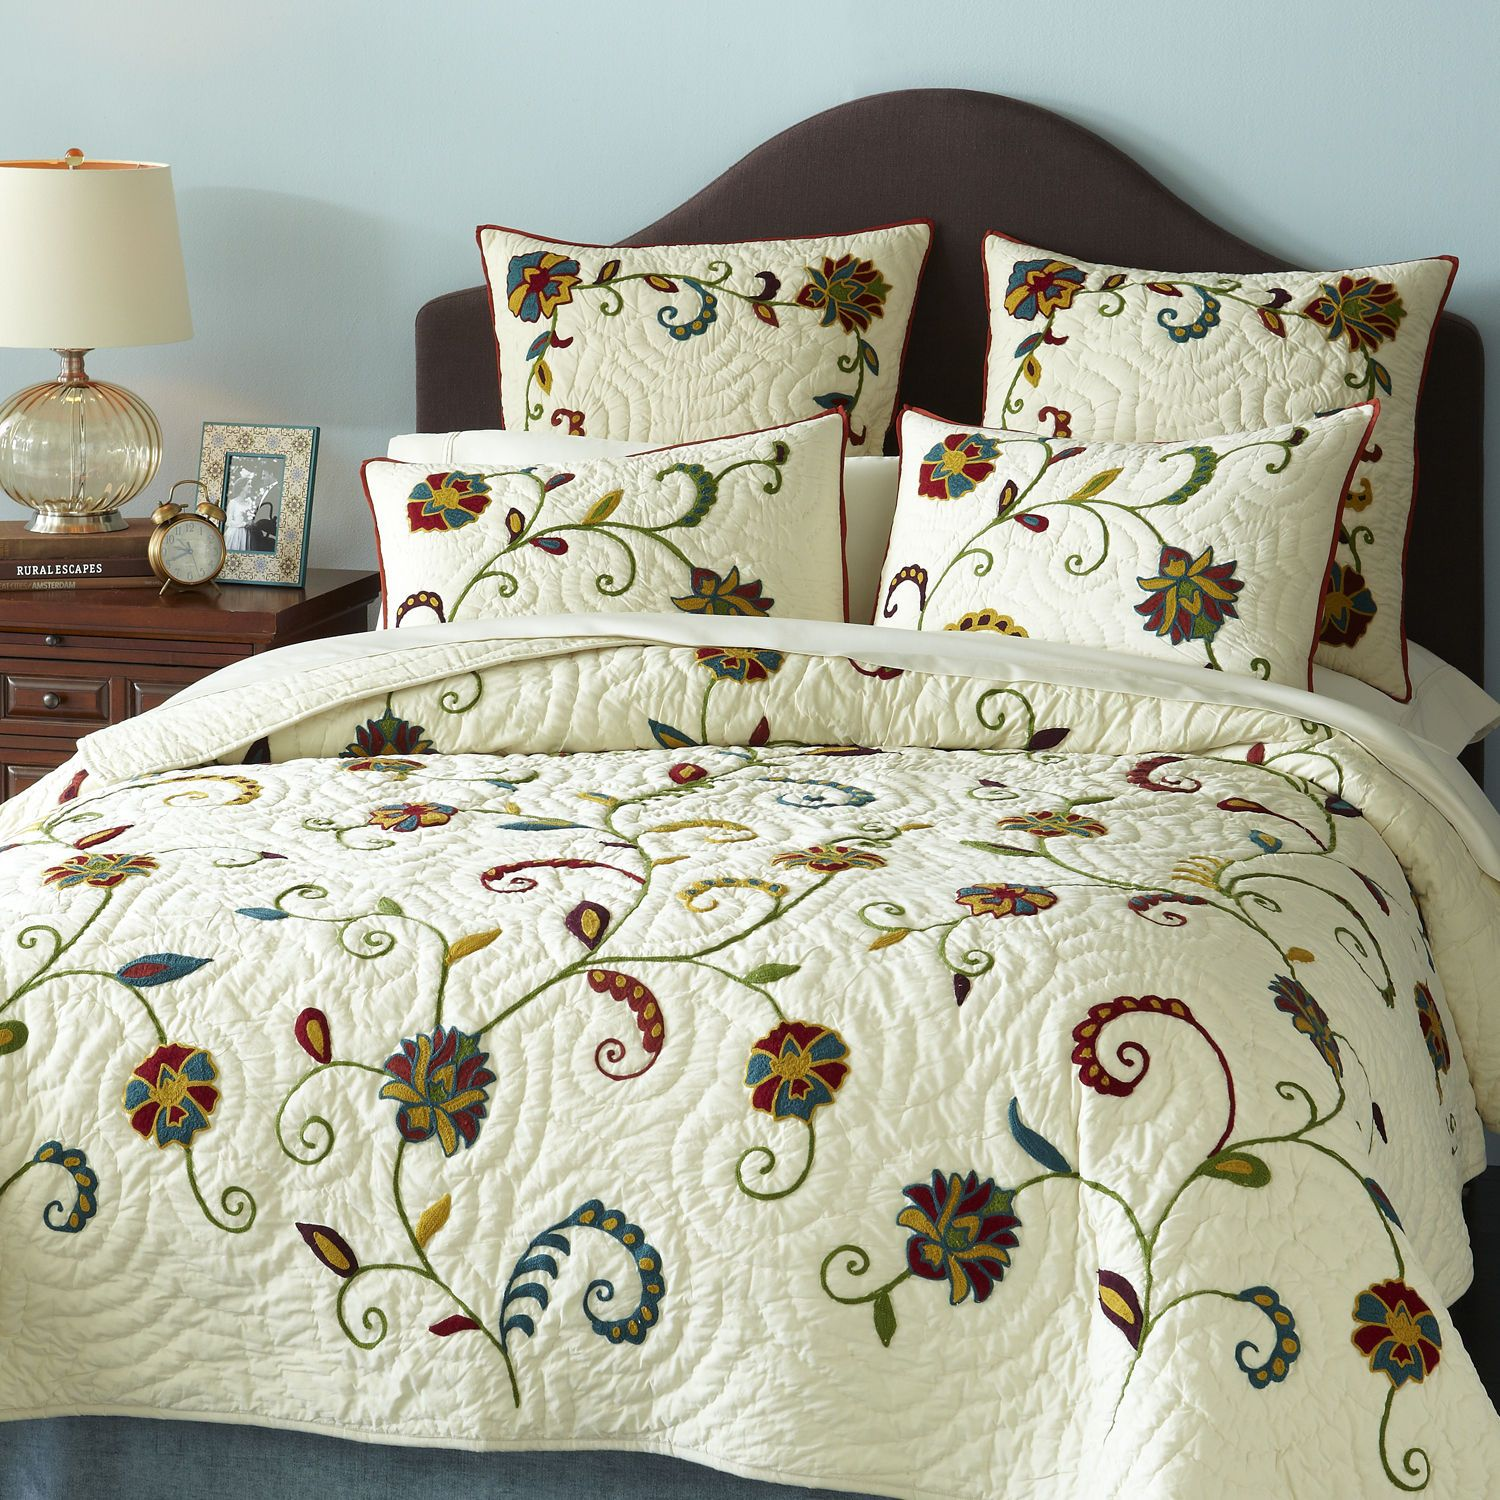 Vivian Floral Bedding & Quilt From Pier One With My